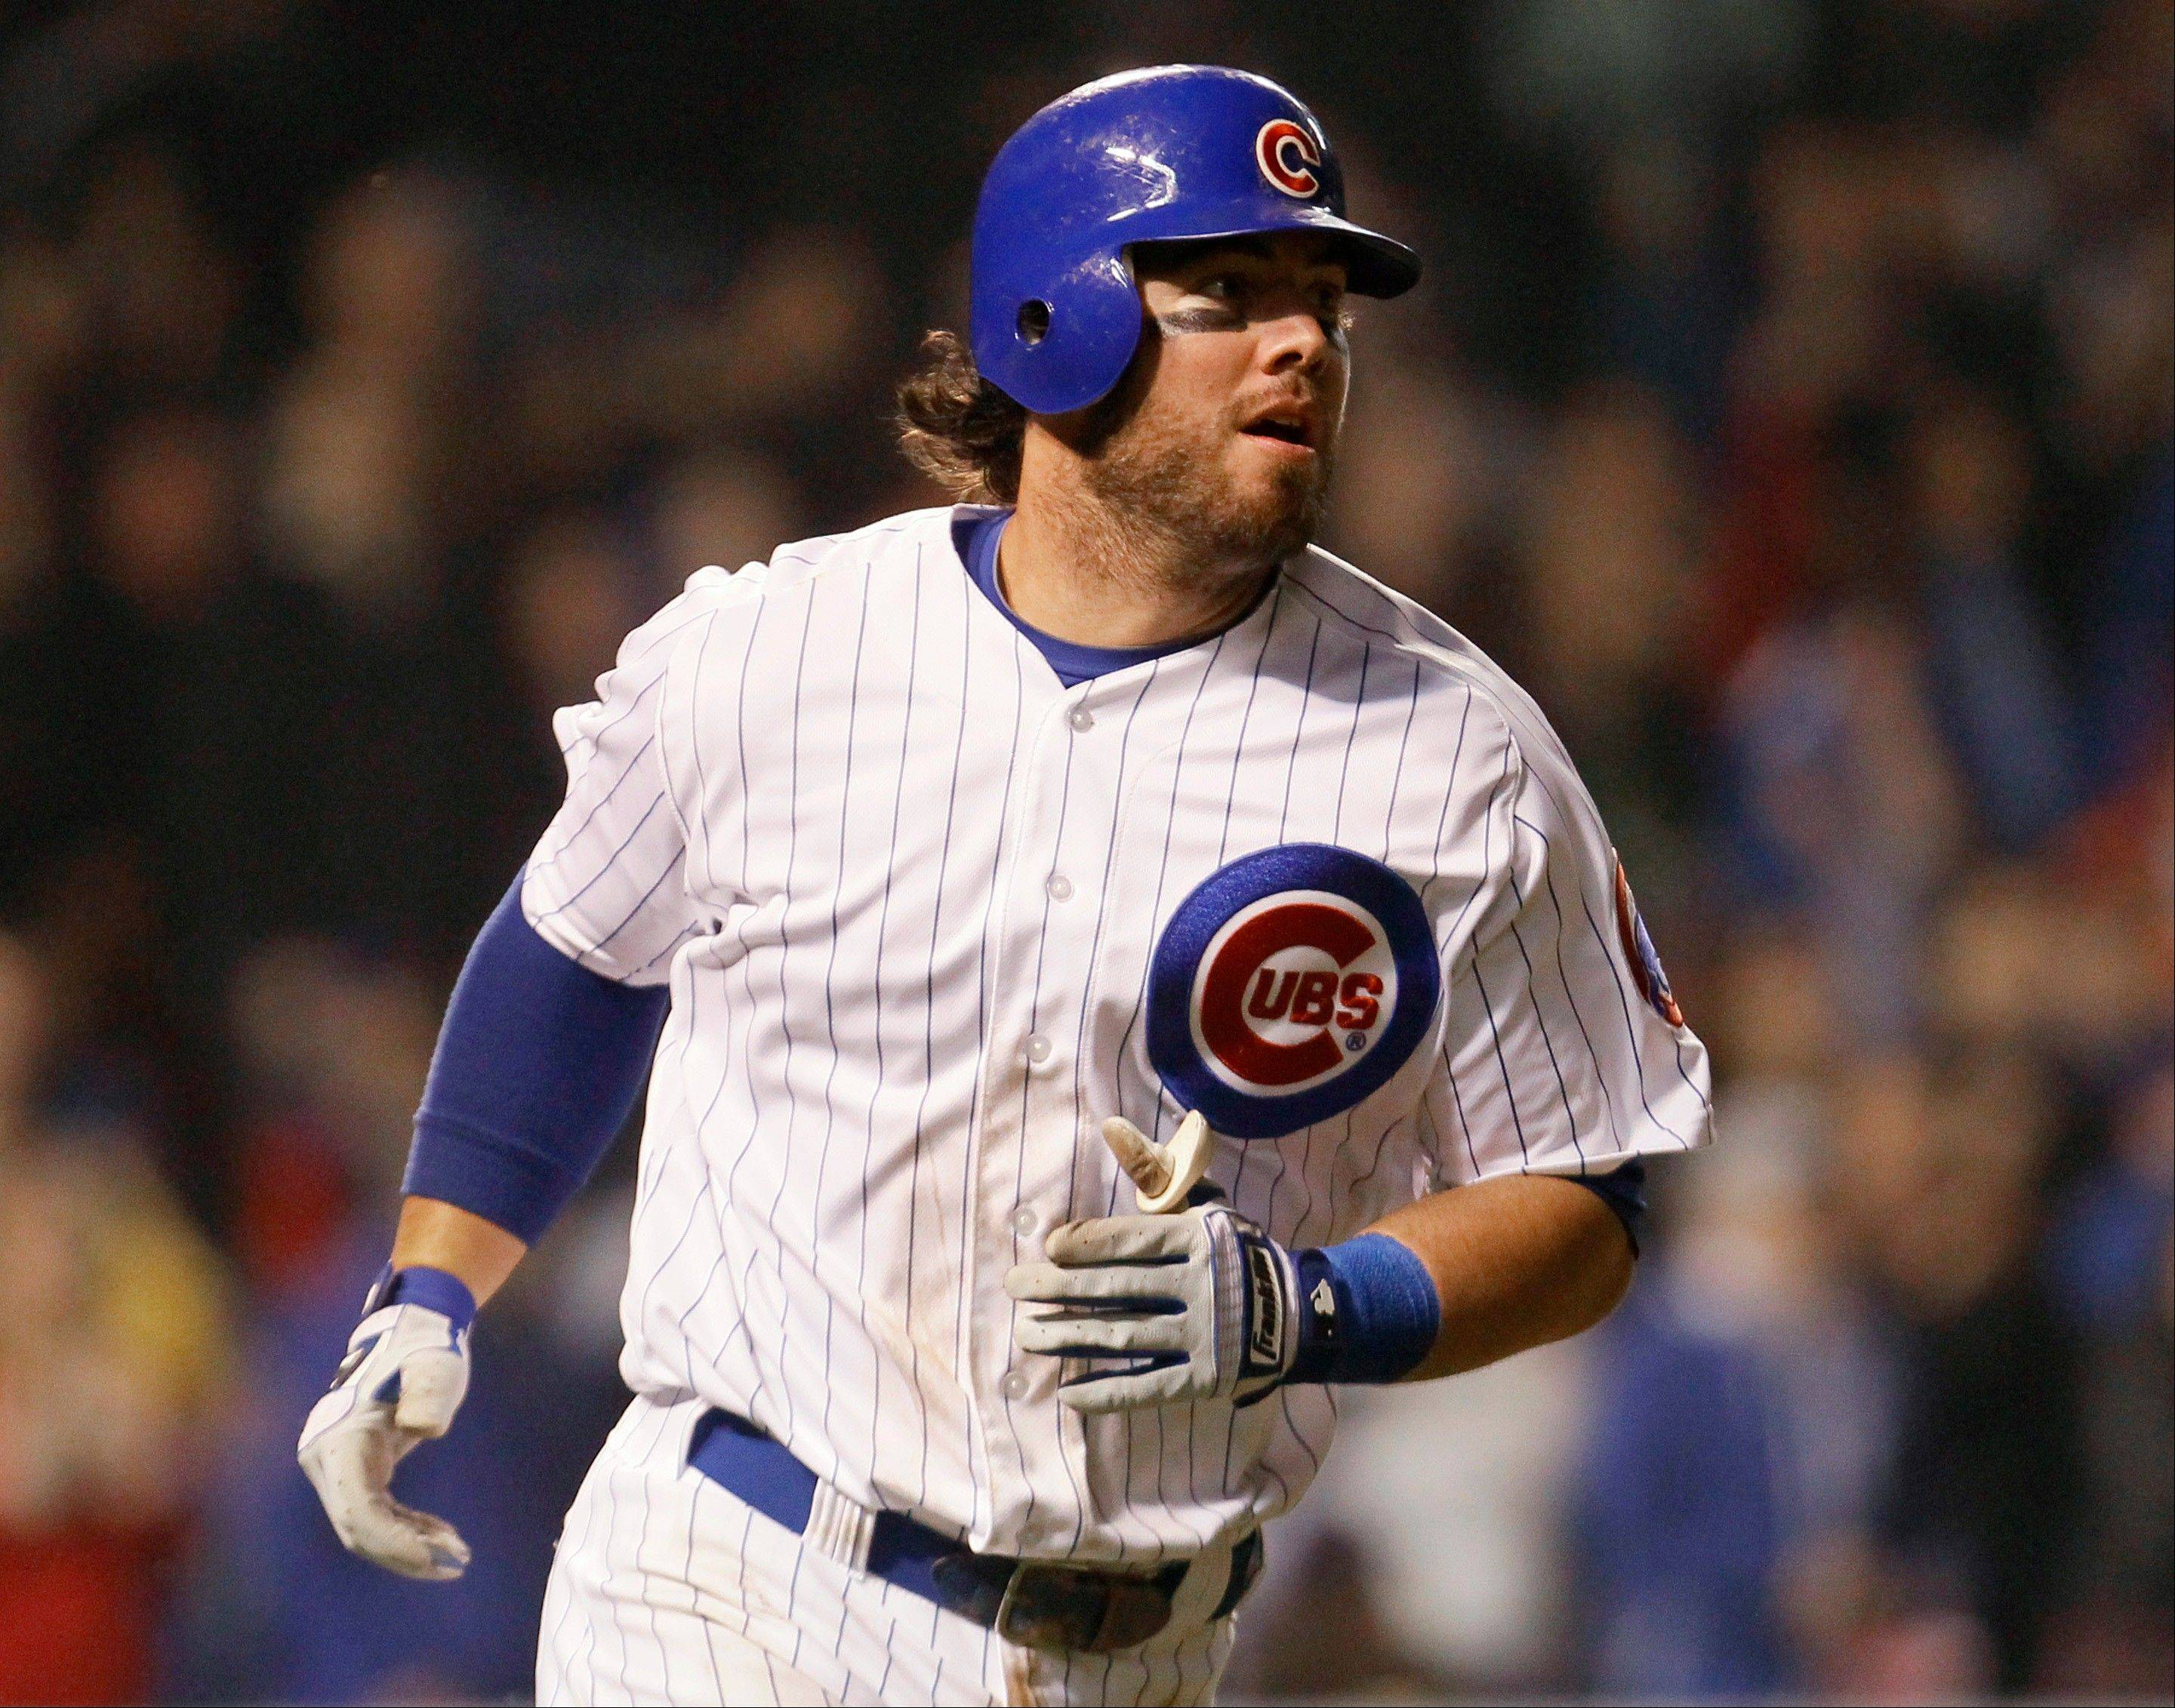 Cubs let third baseman Stewart become a free agent